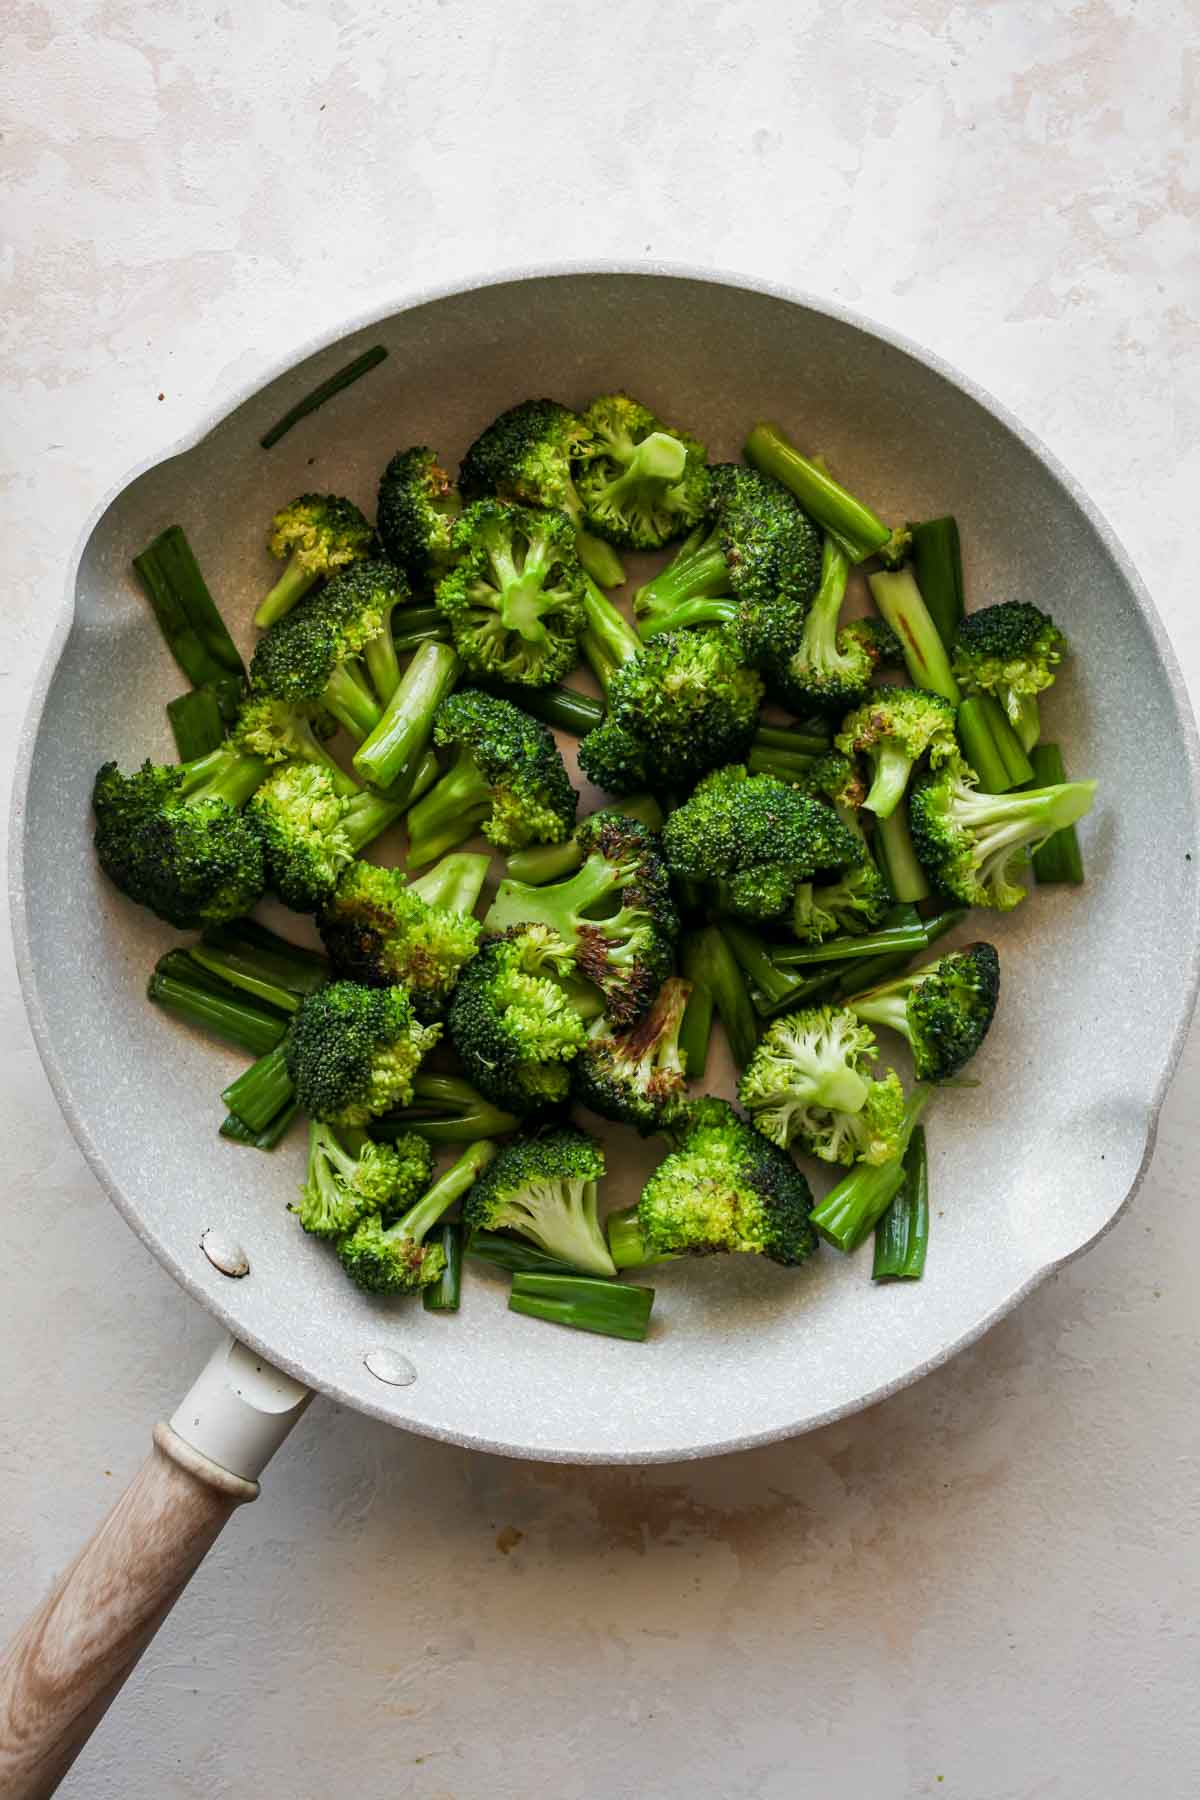 Broccoli florets and green onion being sautéed in a white skillet